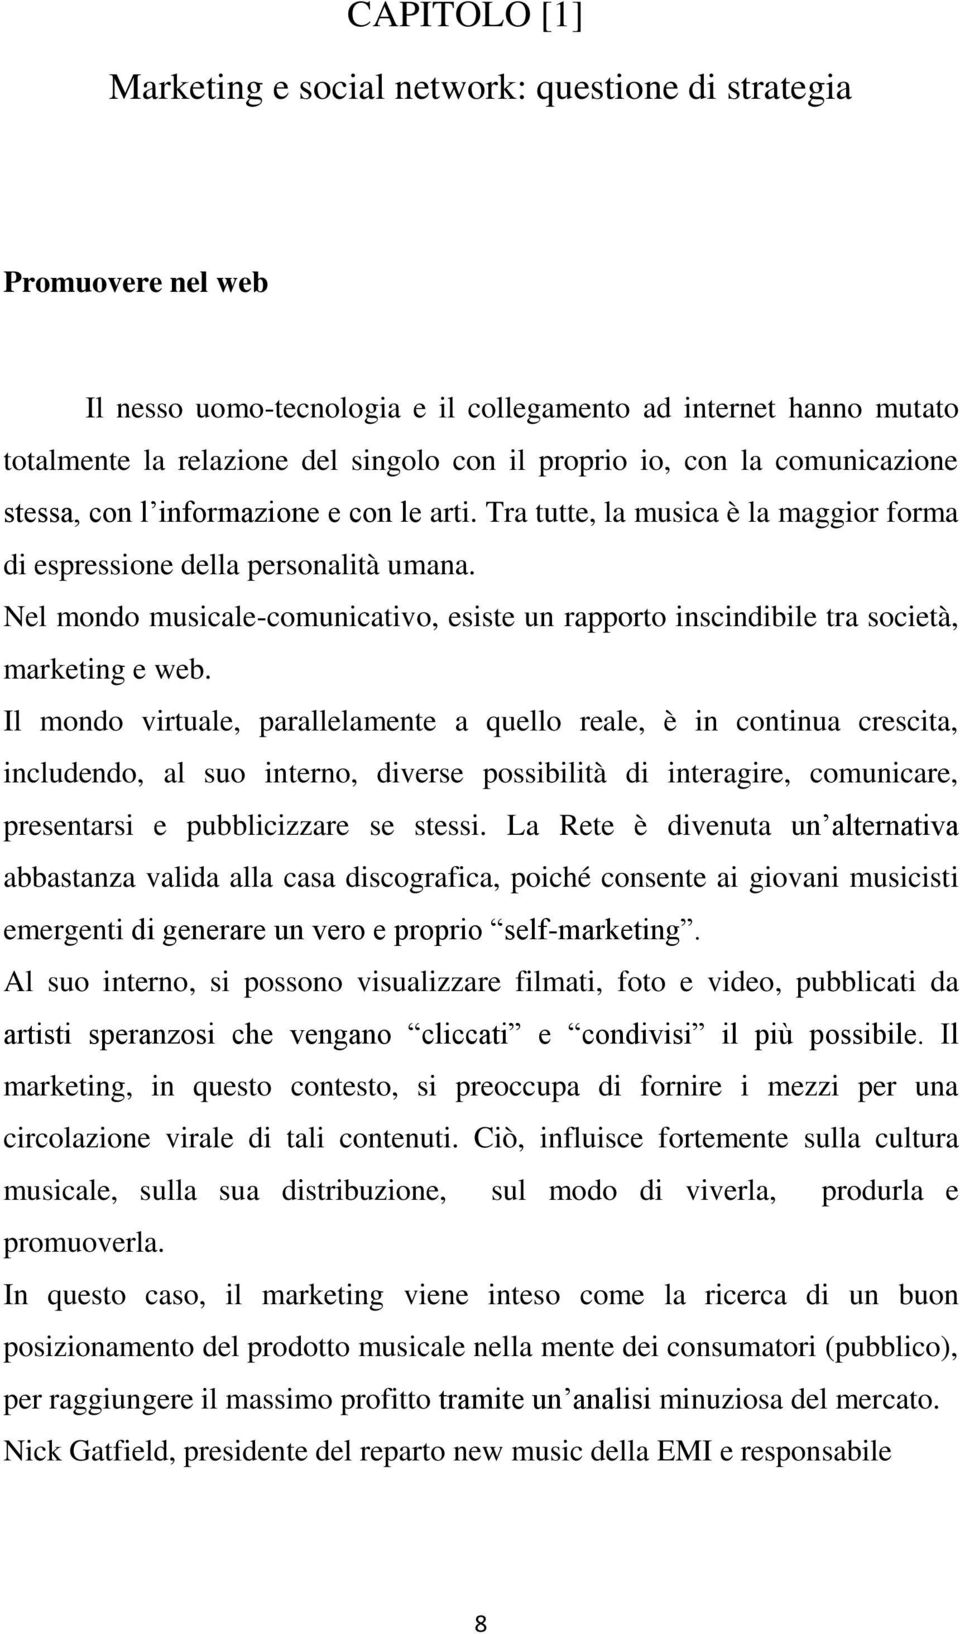 Nel mondo musicale-comunicativo, esiste un rapporto inscindibile tra società, marketing e web.